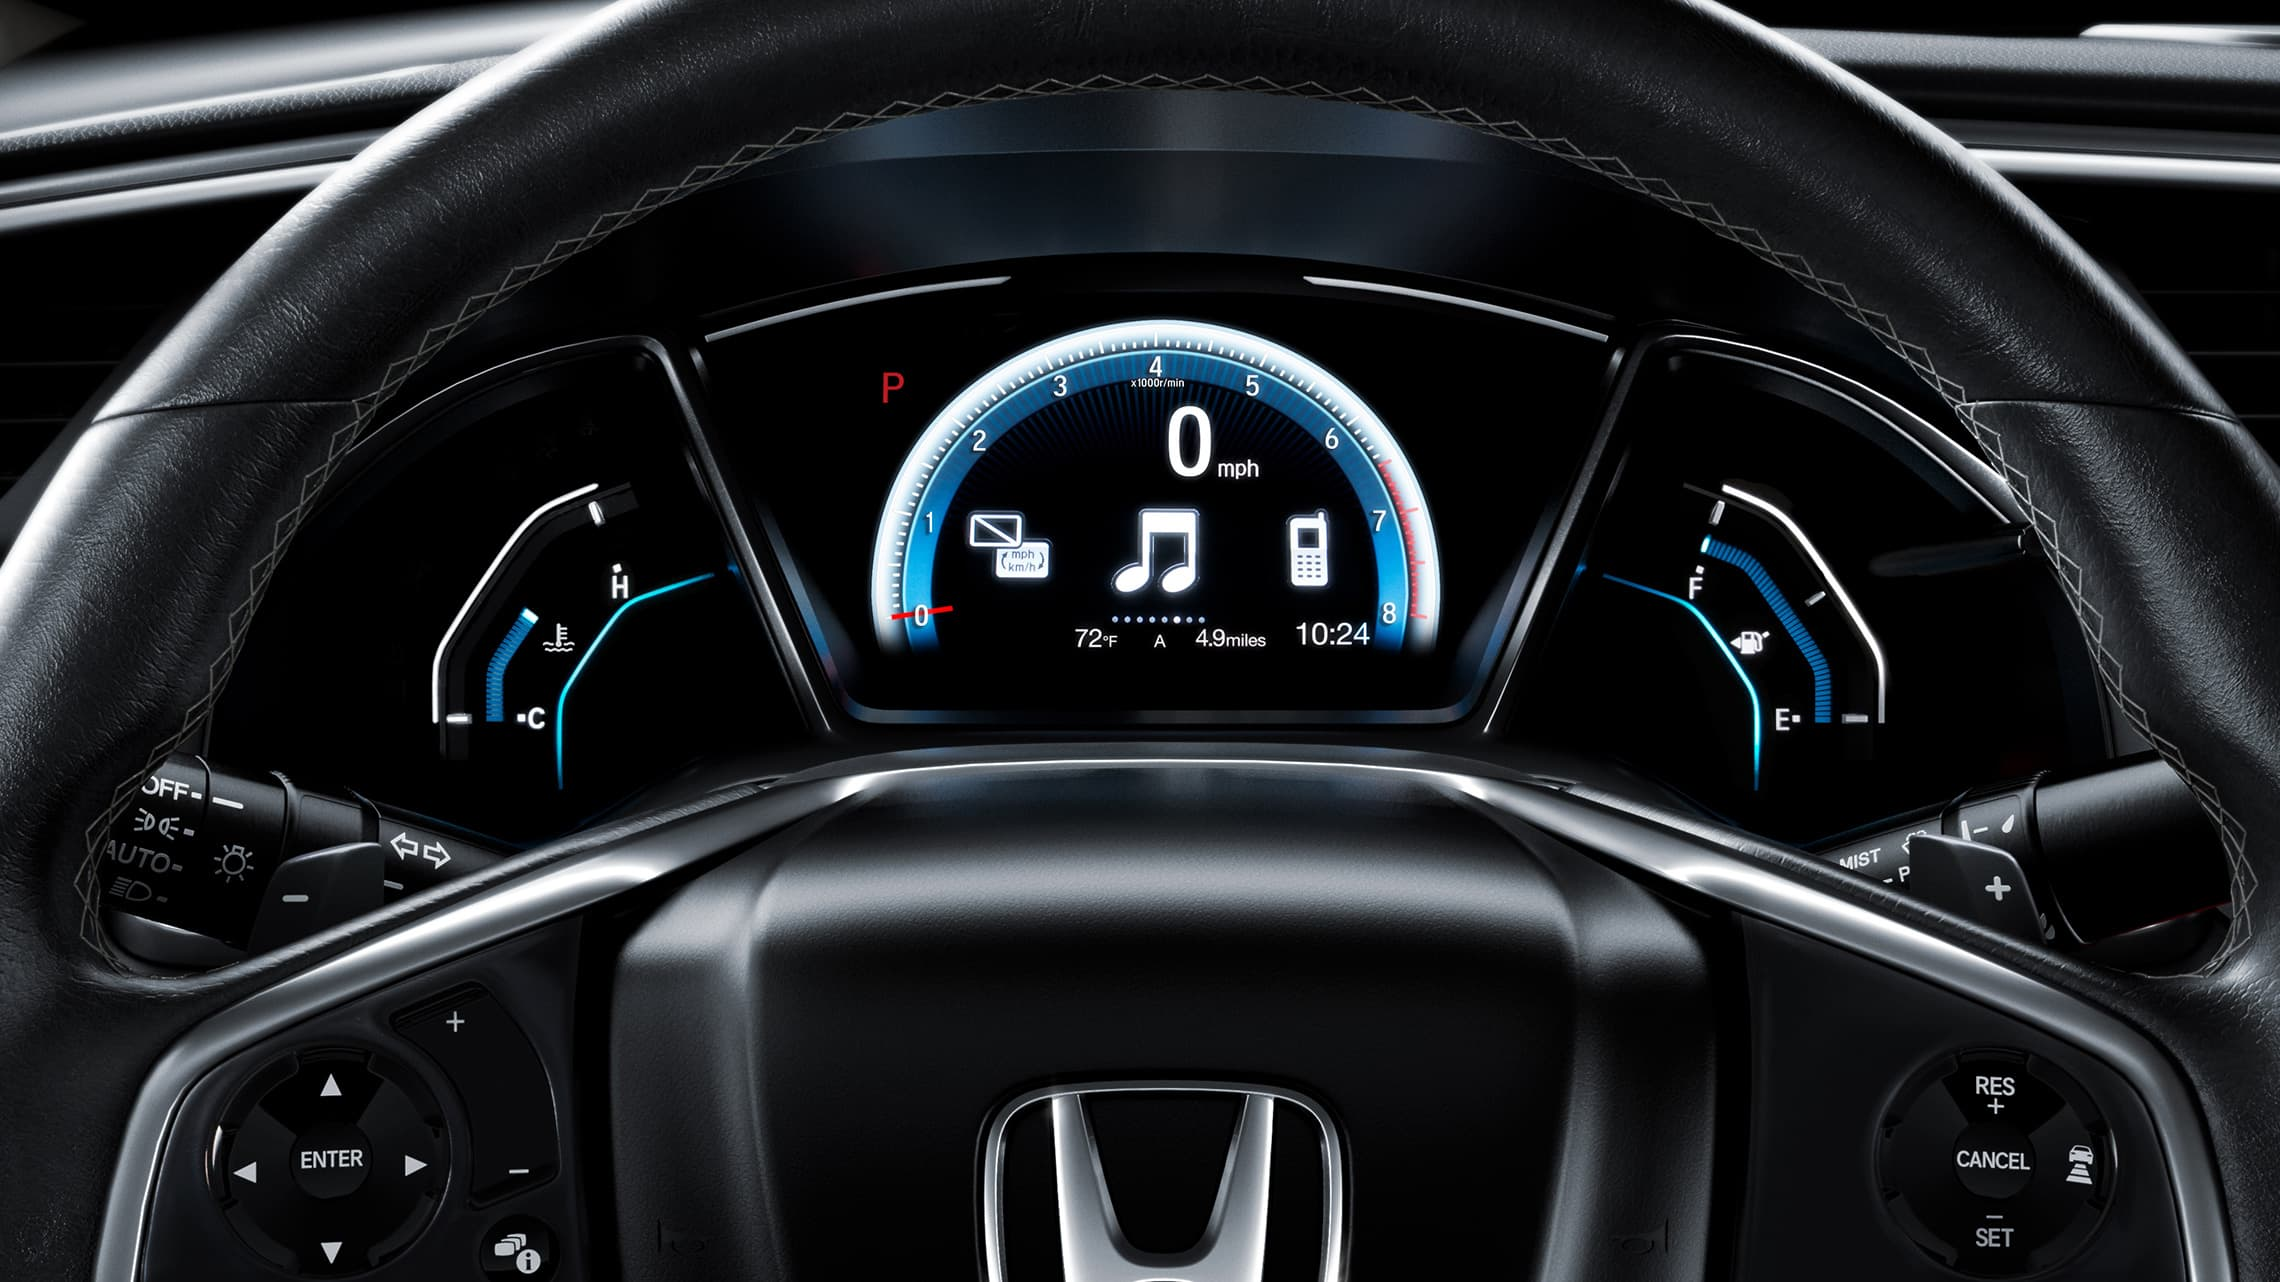 Driver Information Interface detail in the 2020 Honda Civic Touring Coupe.